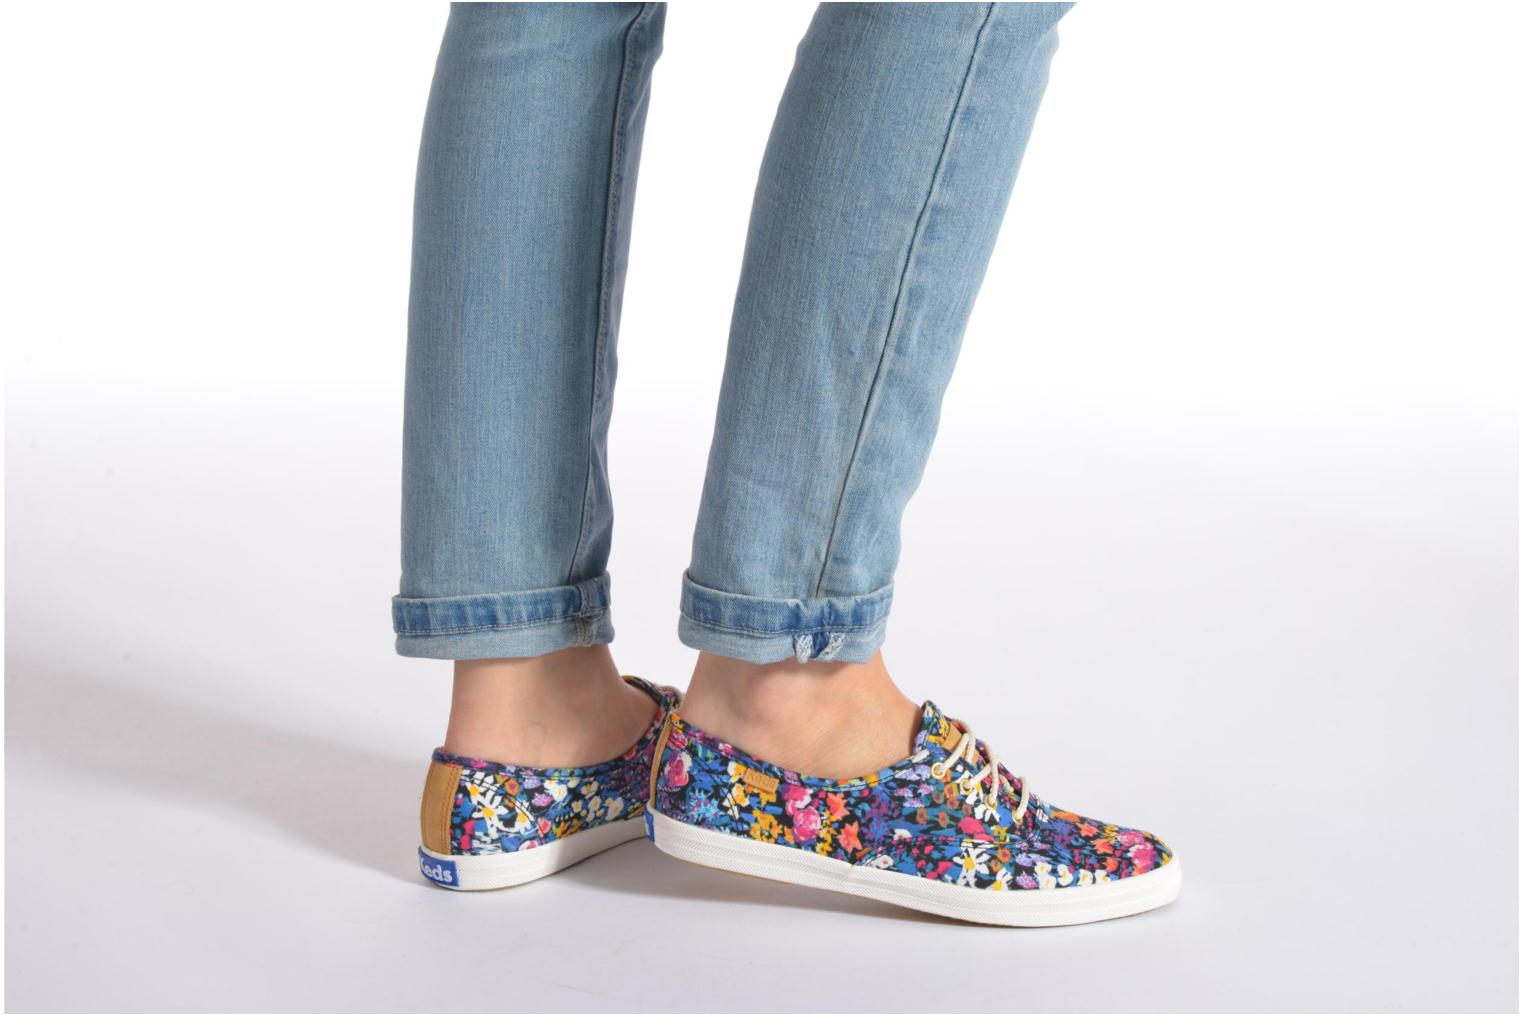 Sneakers Keds Ch Liberty Floral Multi se forneden